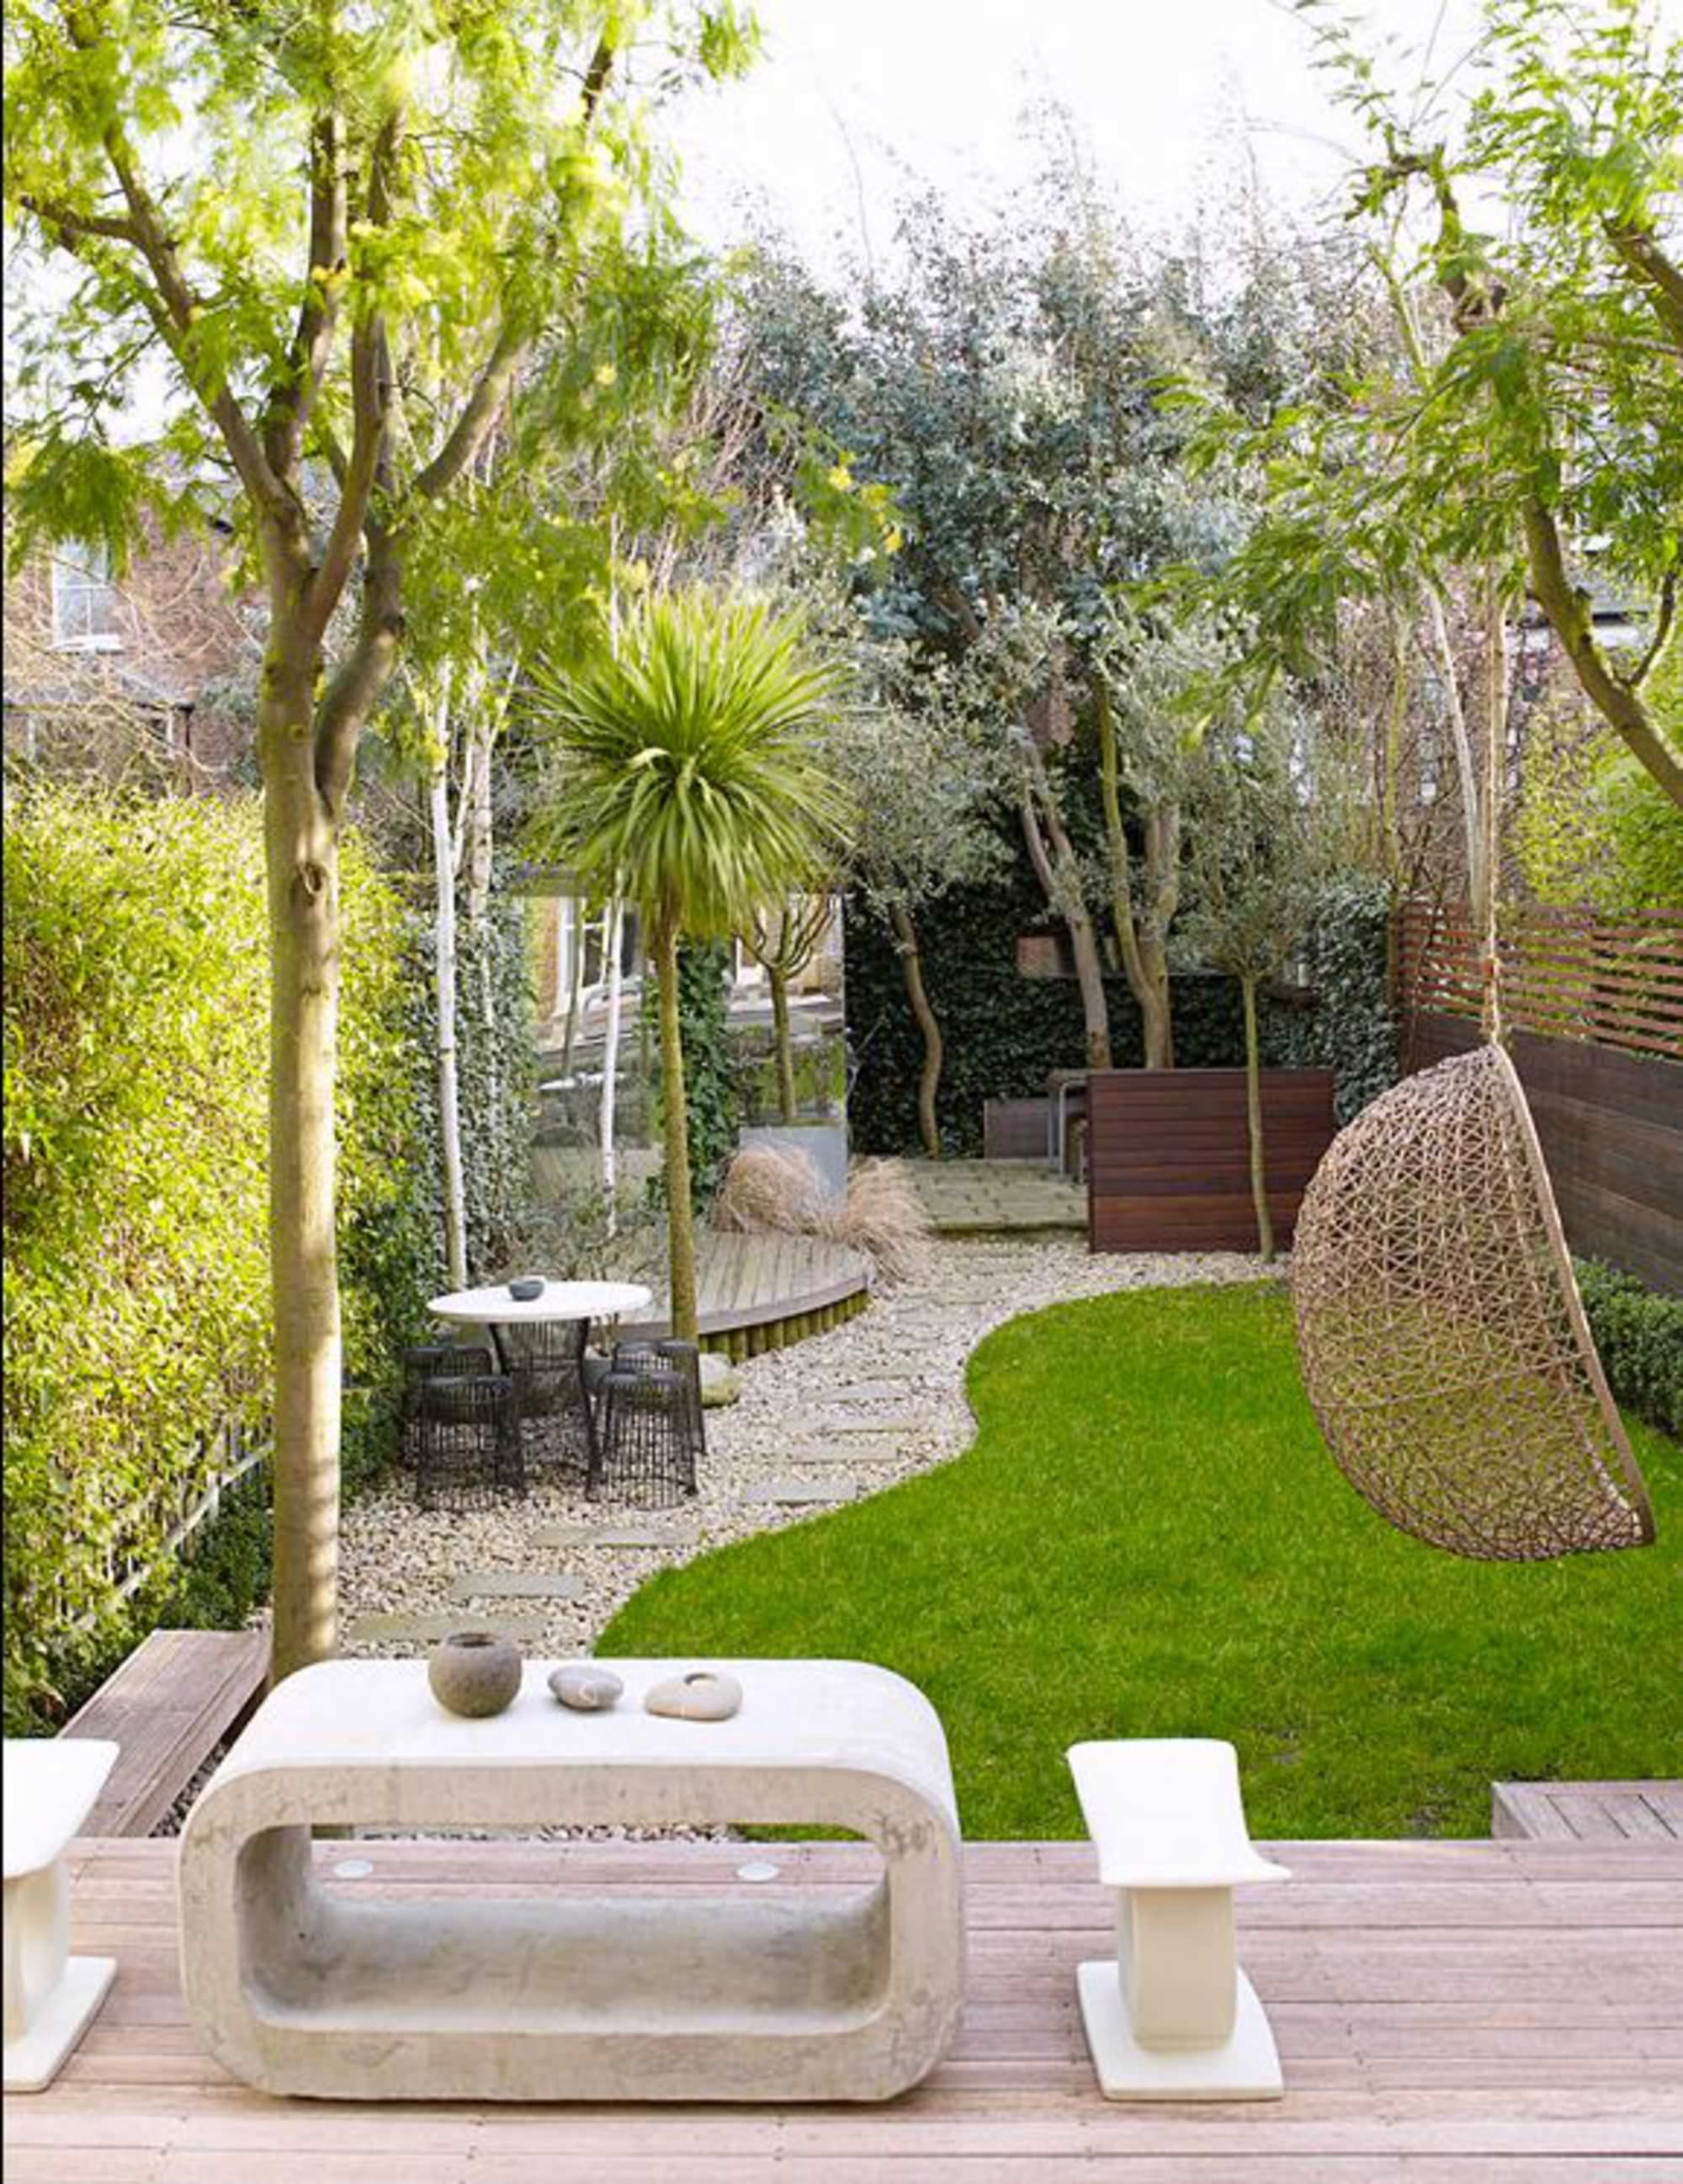 Small gardens could be a great decoration place. There are many